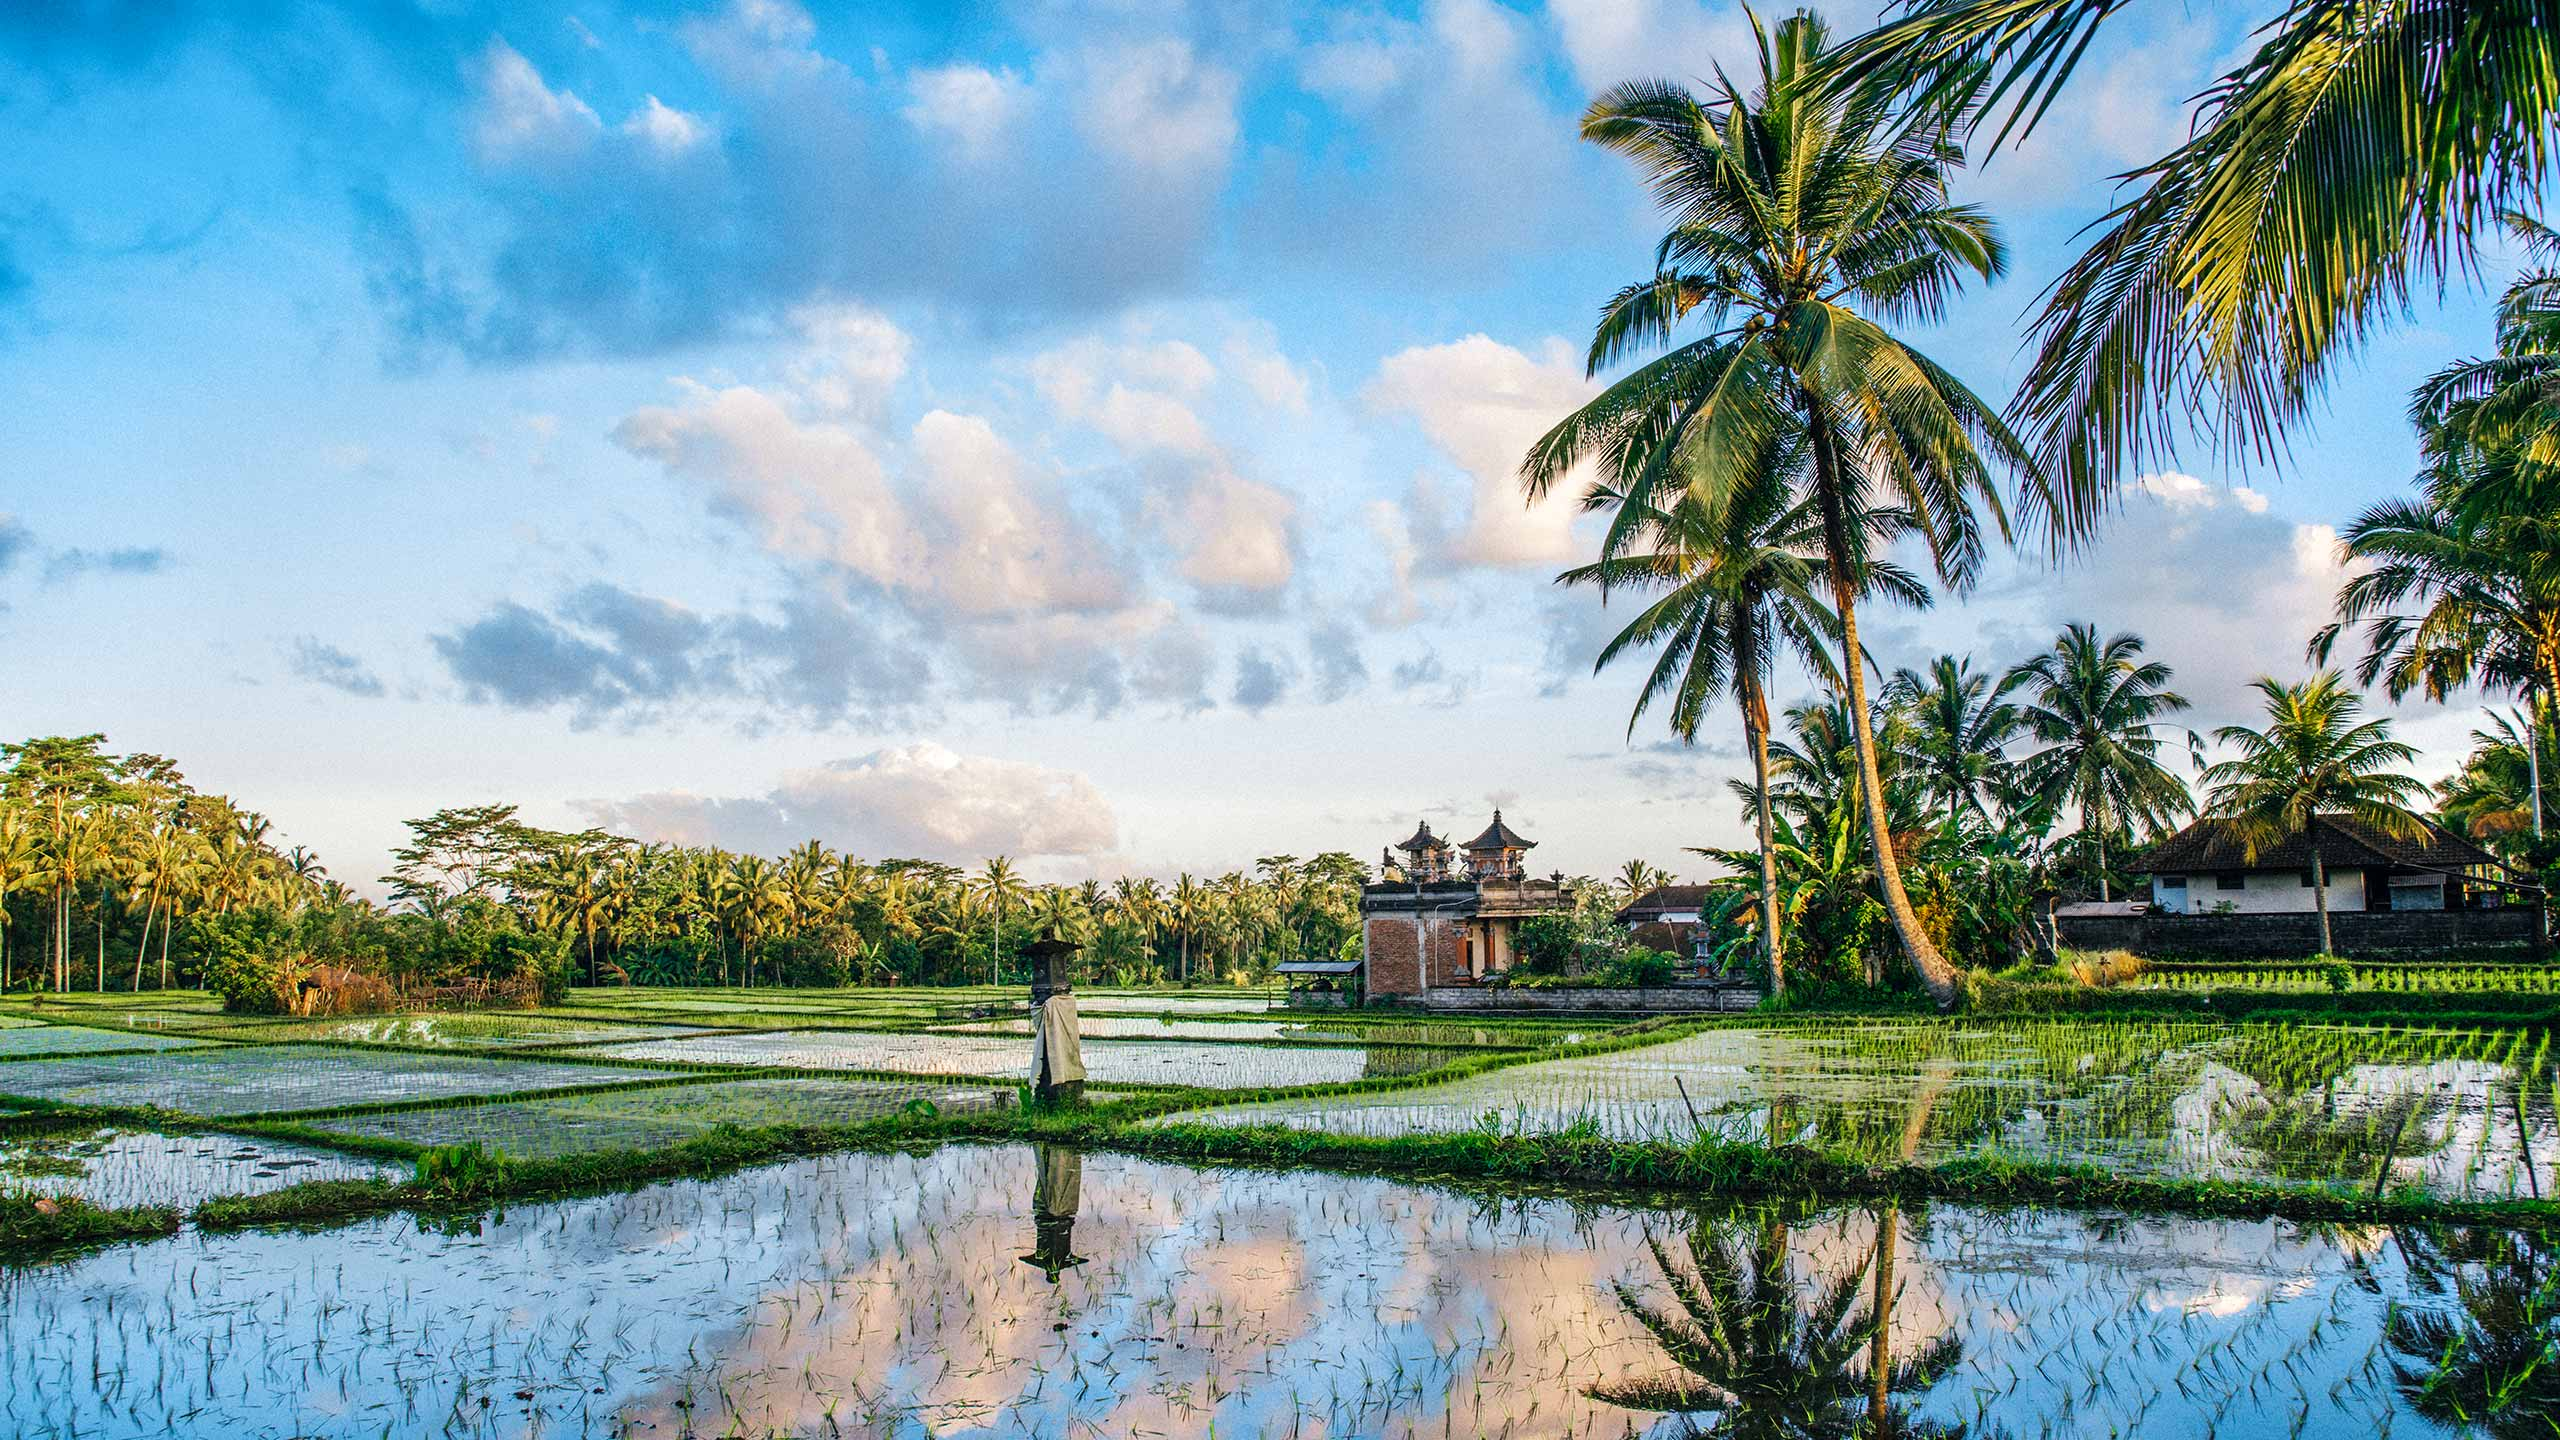 Ricefield view of Bali in Indonesia